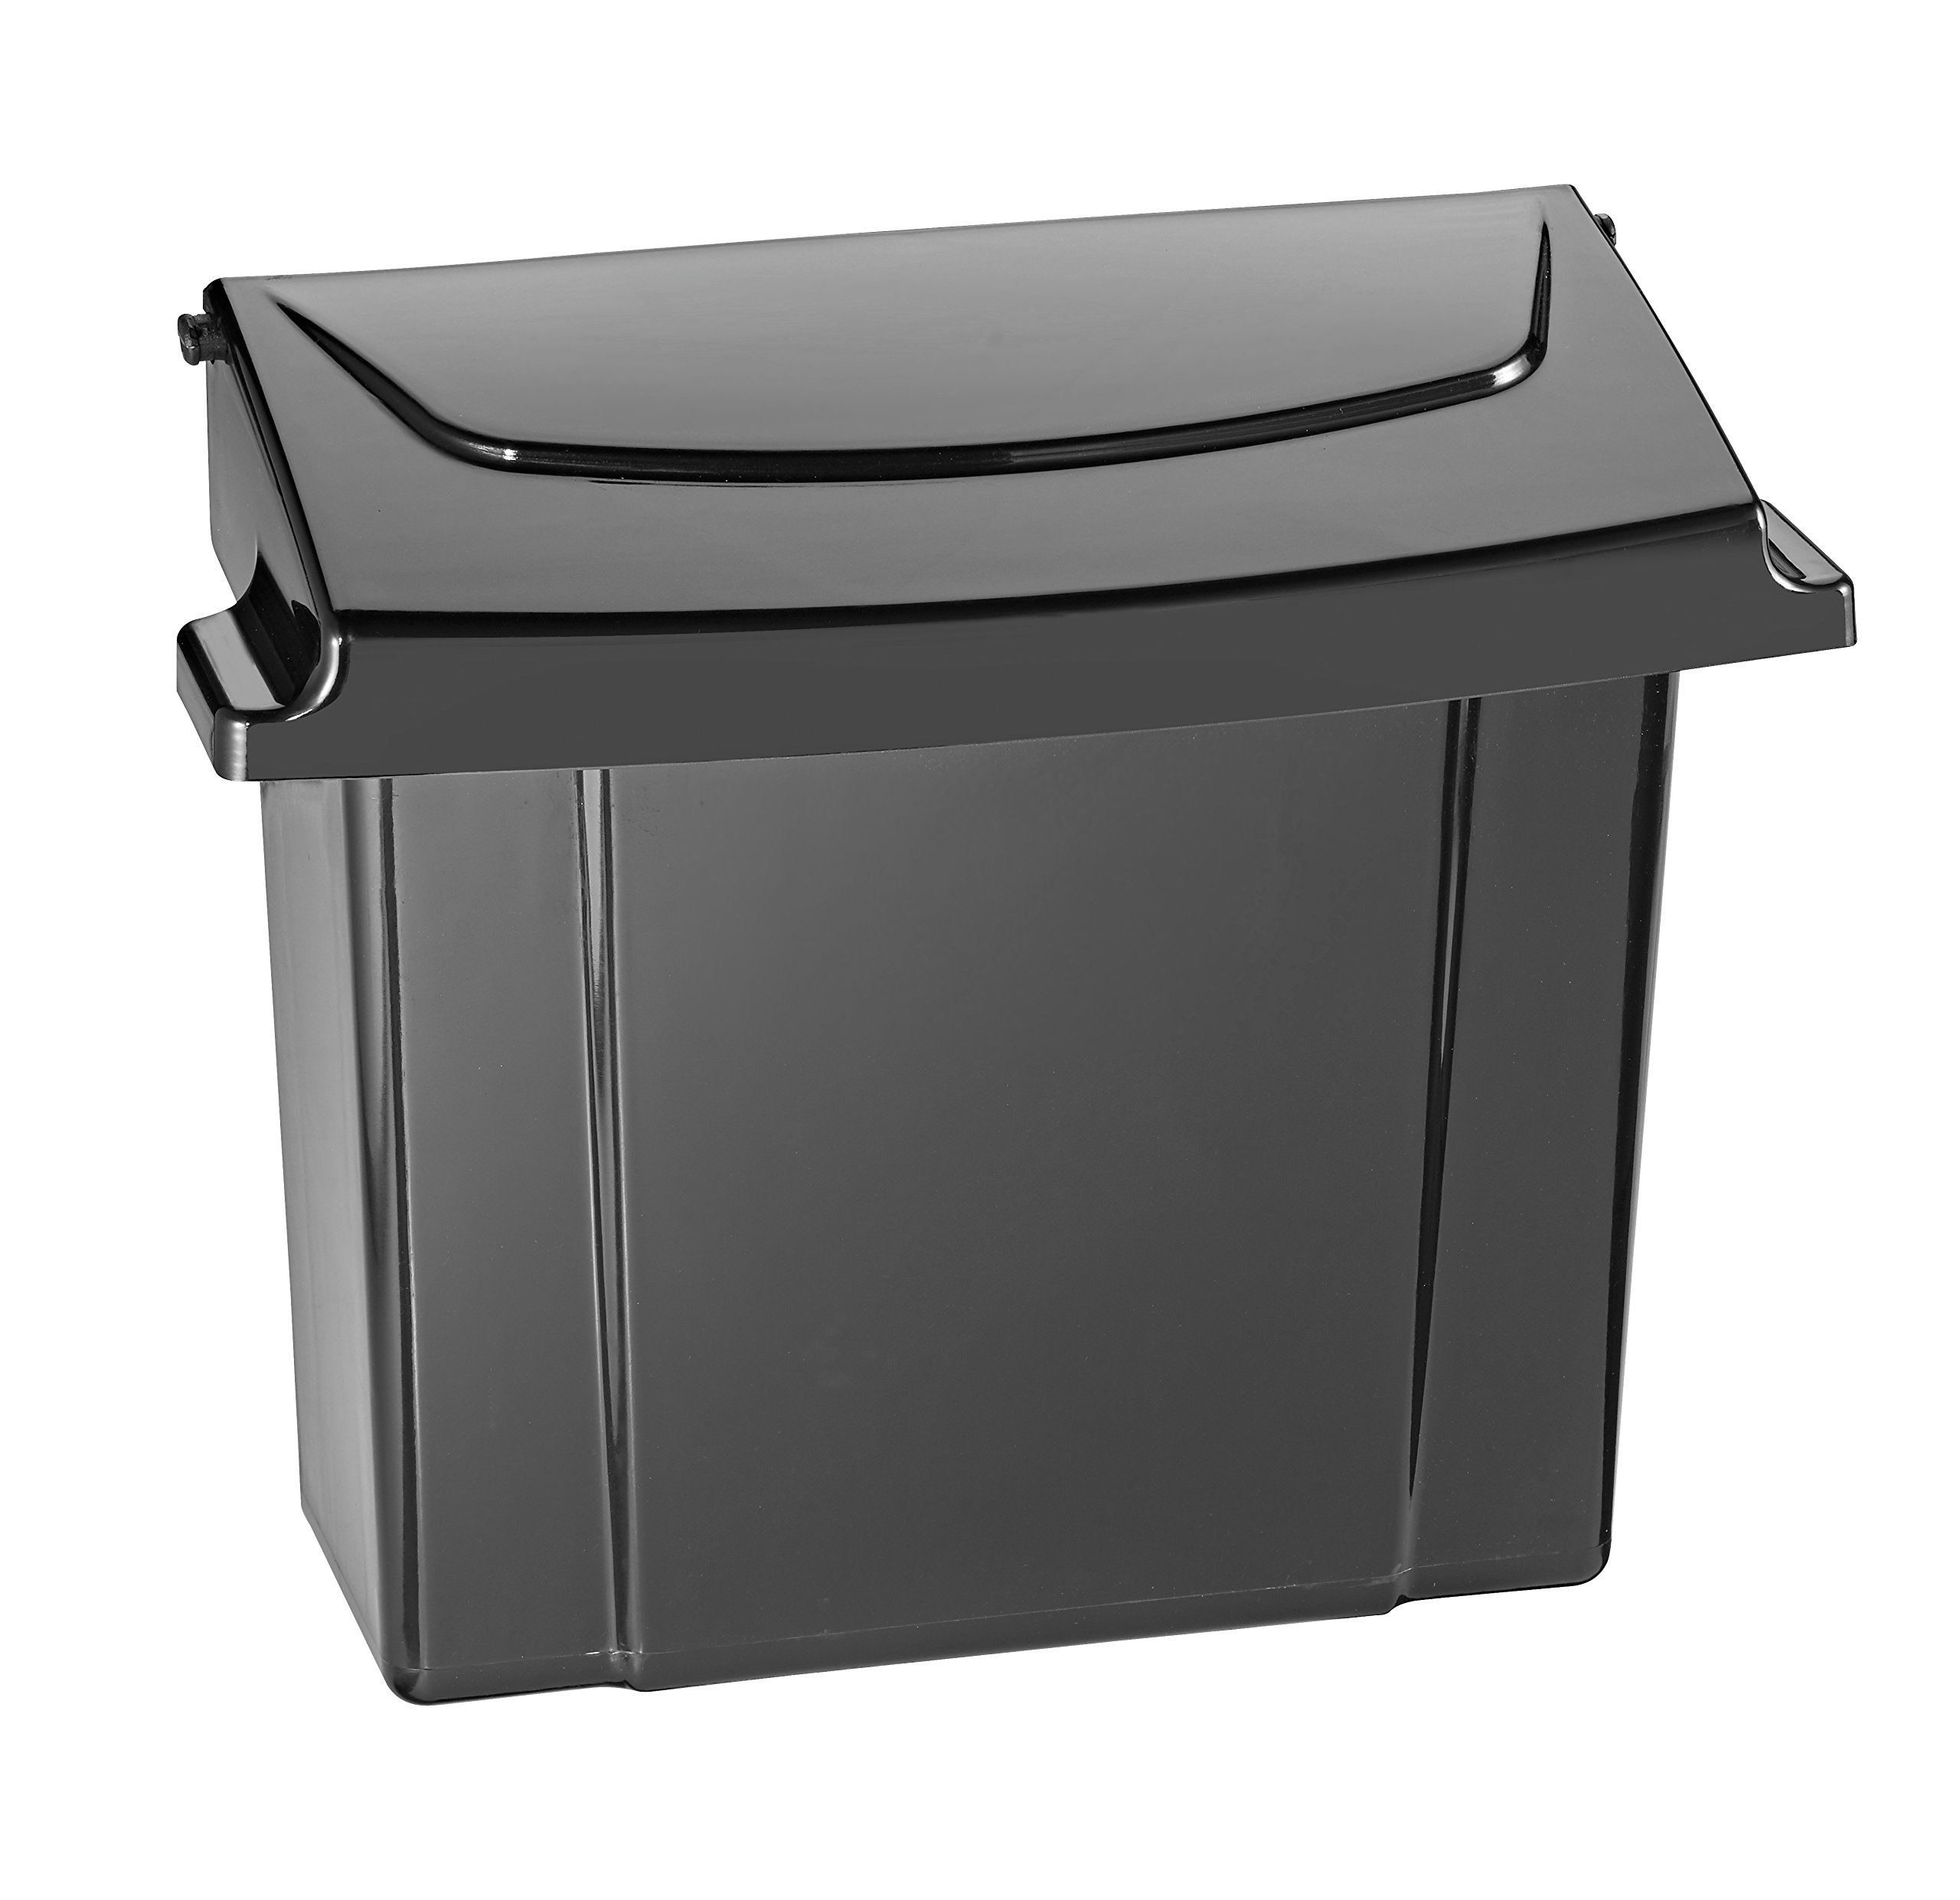 Alpine Sanitary Napkins Receptacle - Feminine Hygiene Products, Tampon & Waste Disposal Container - Durable ABS Plastic - Seals Tightly & Traps Odors -Easy Installation Hardware Included (Black) by Alpine Industries